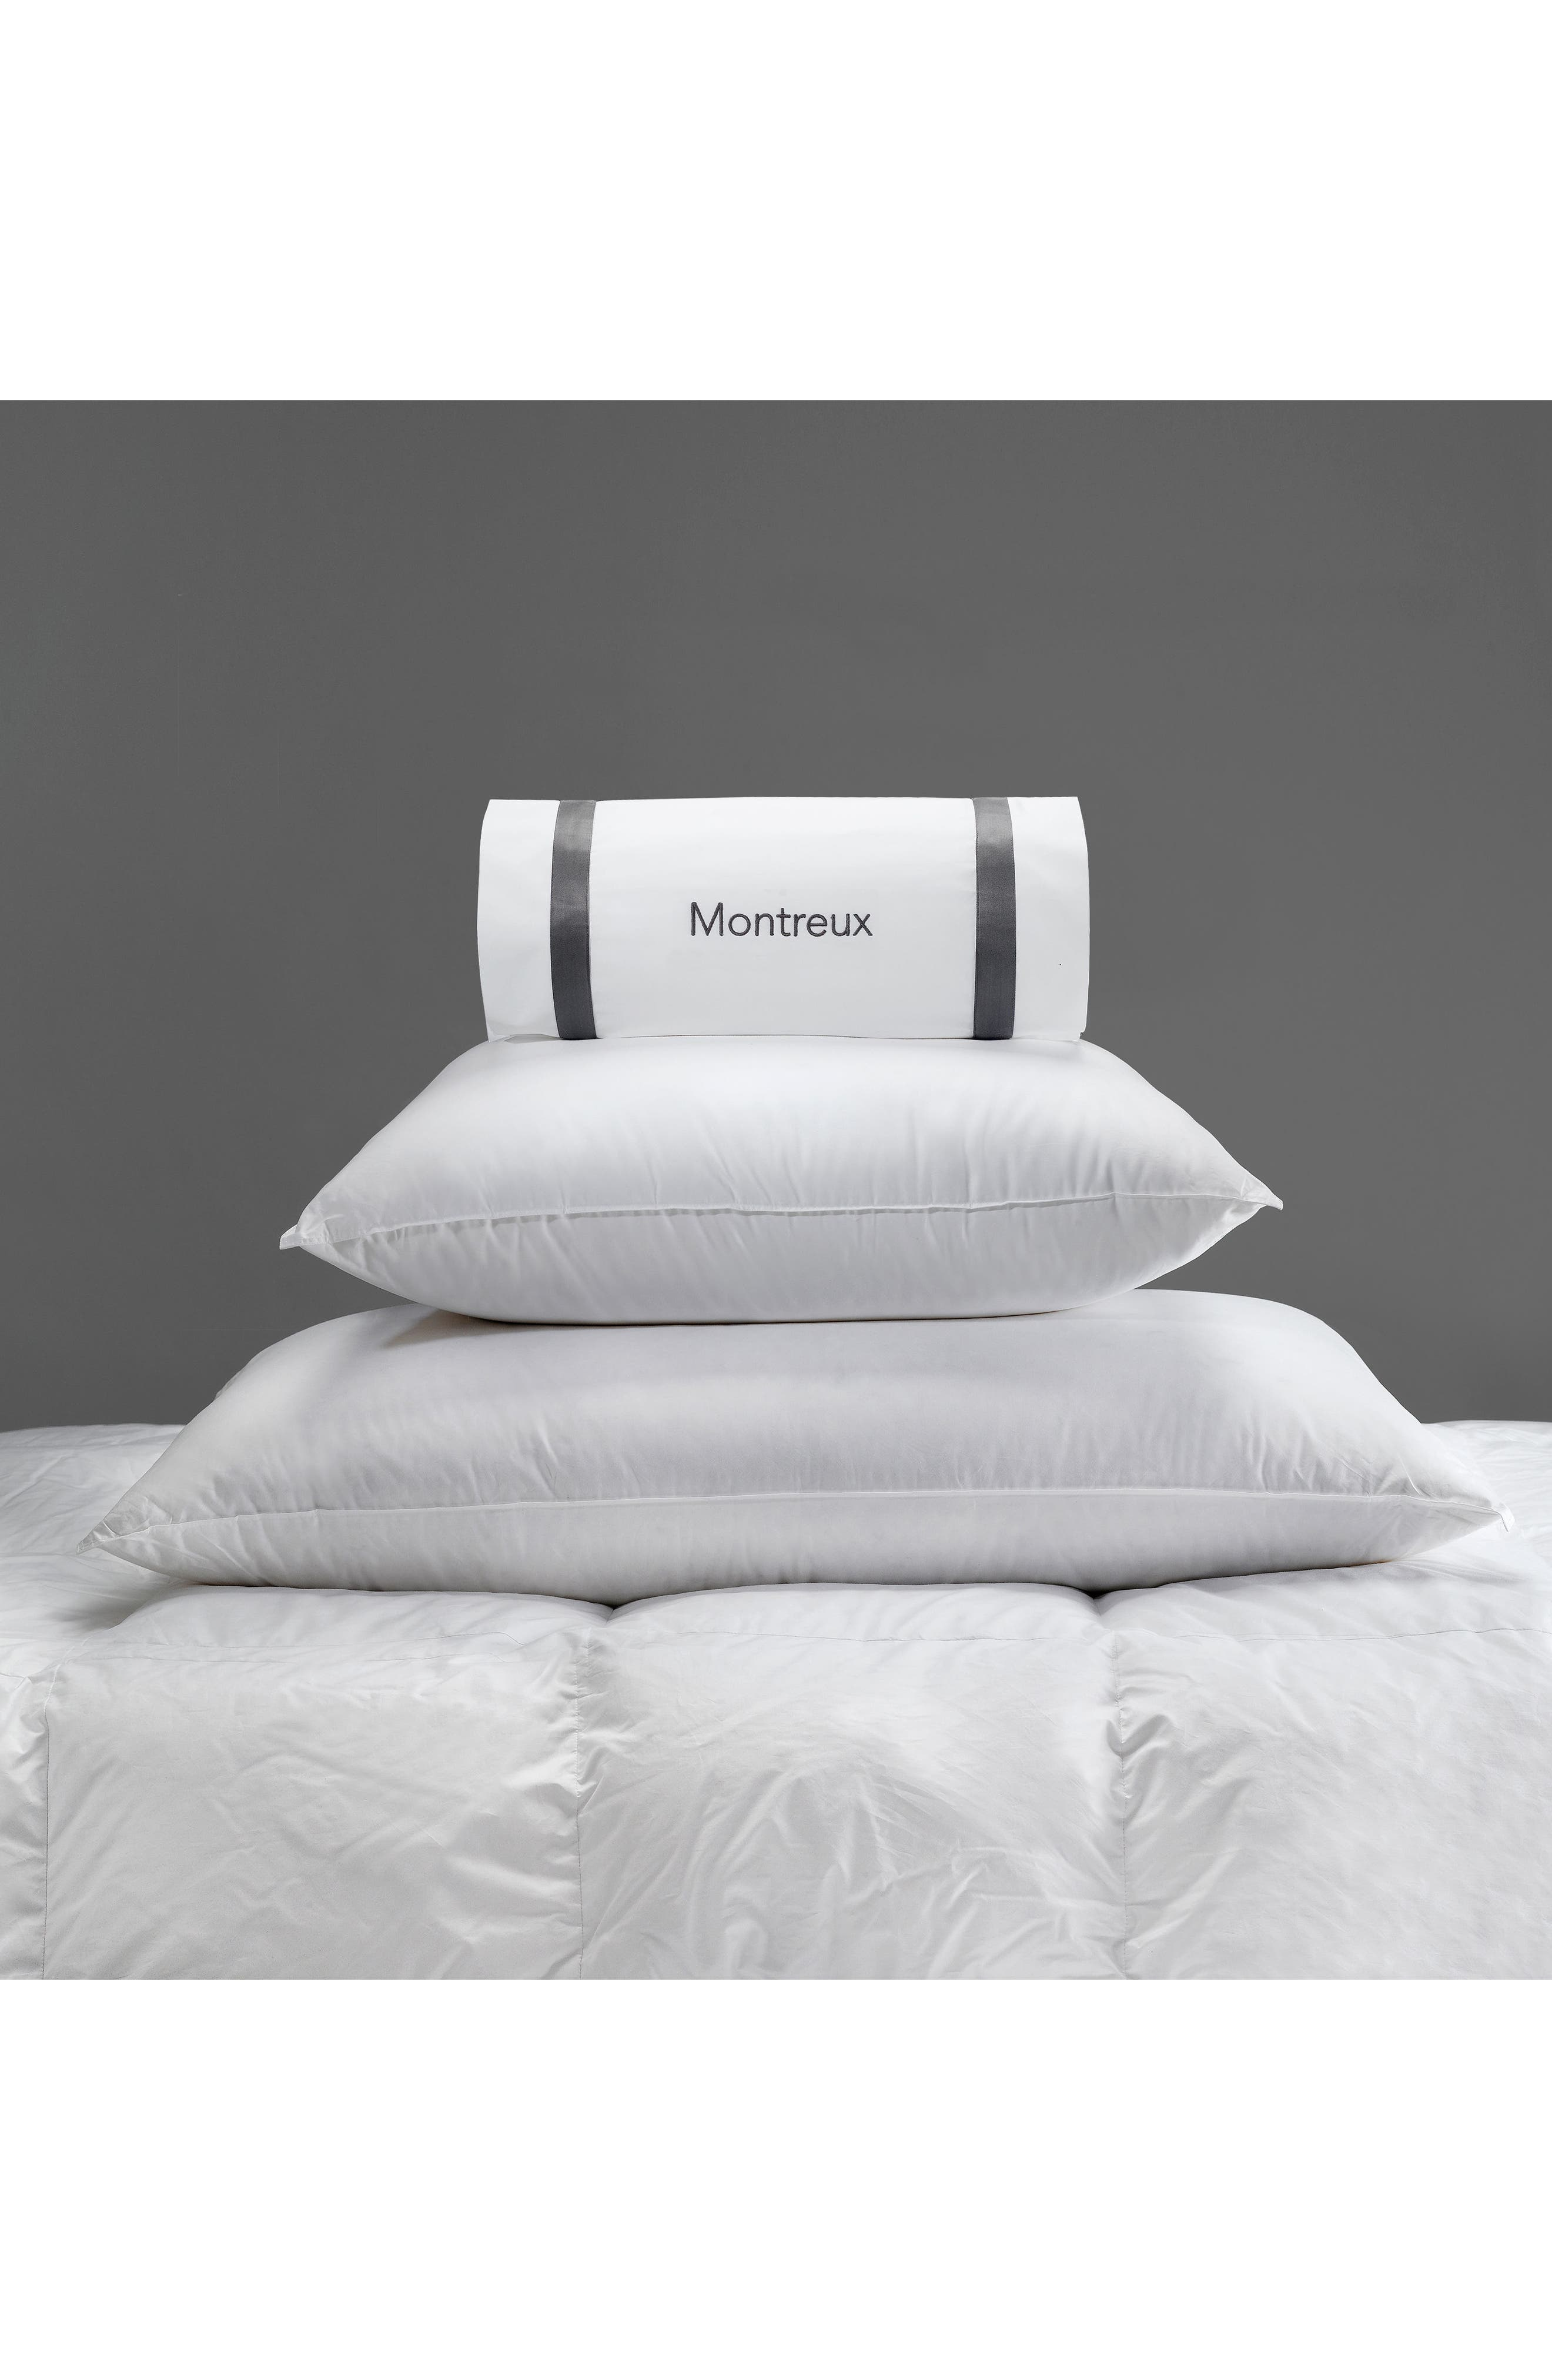 Montreux Firm 600 Fill Power Down 280 Thread Count Pillow,                             Alternate thumbnail 2, color,                             White